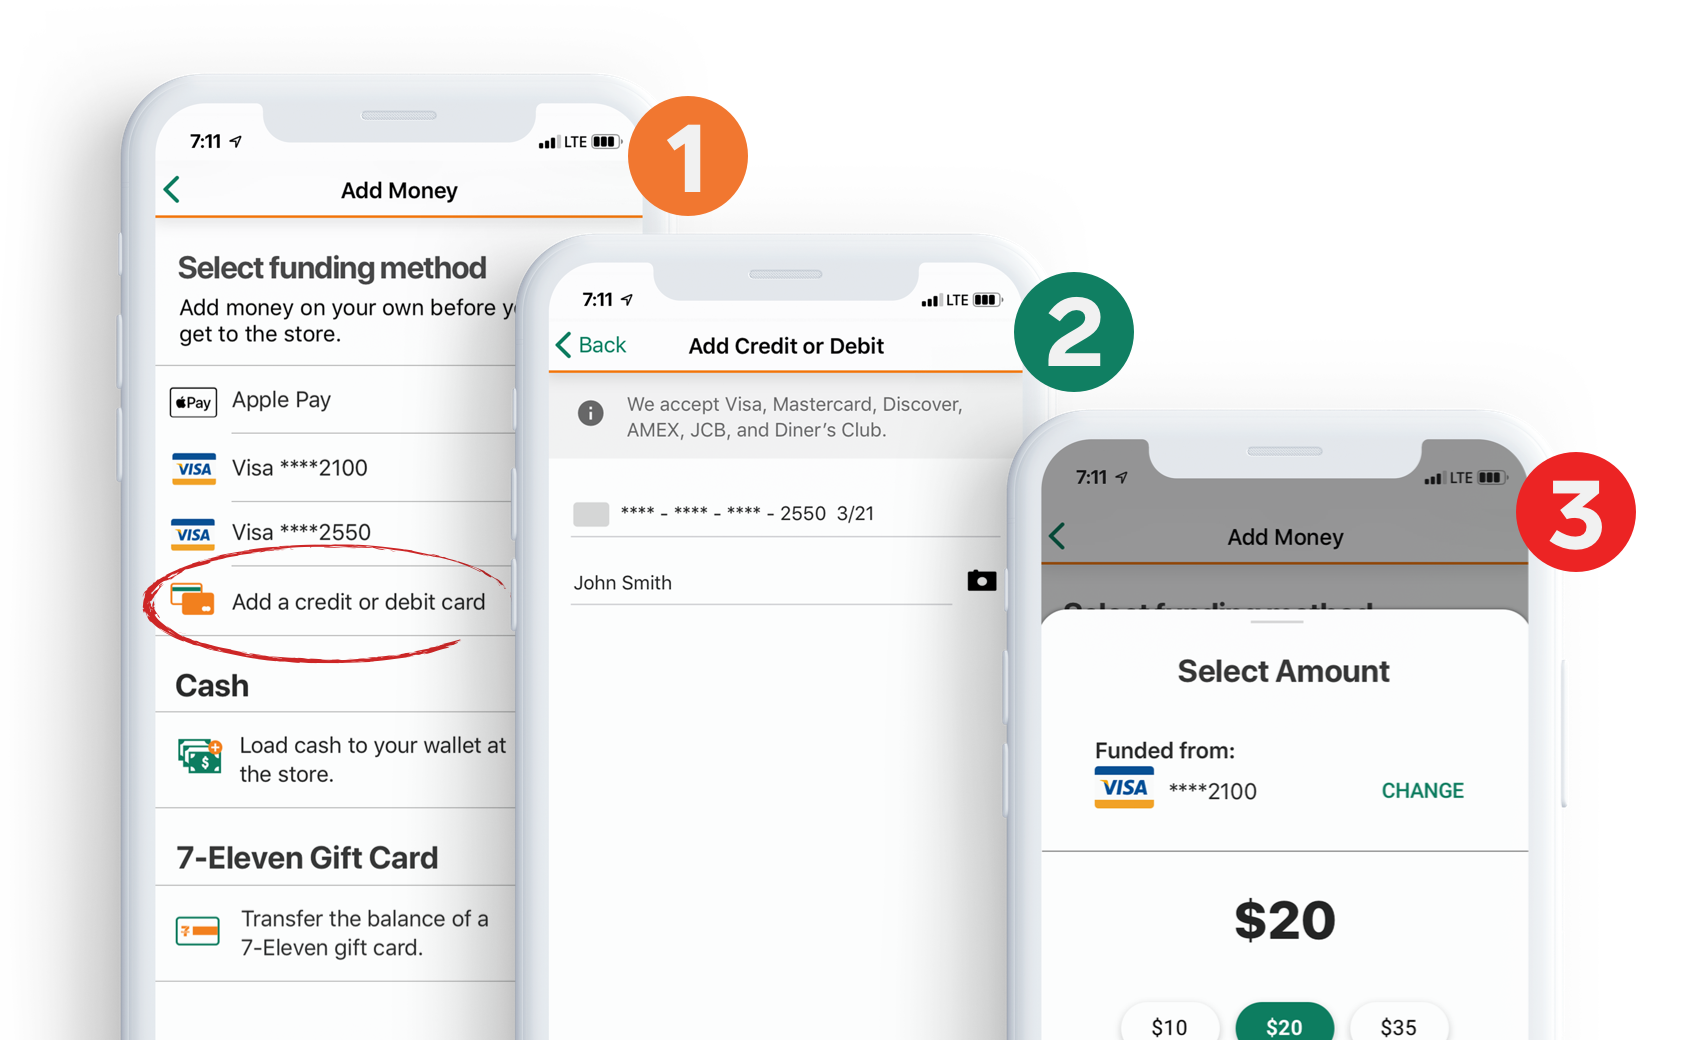 7-Eleven-wallet-app-contactless-payment-how-to-reload-cash-fast.png